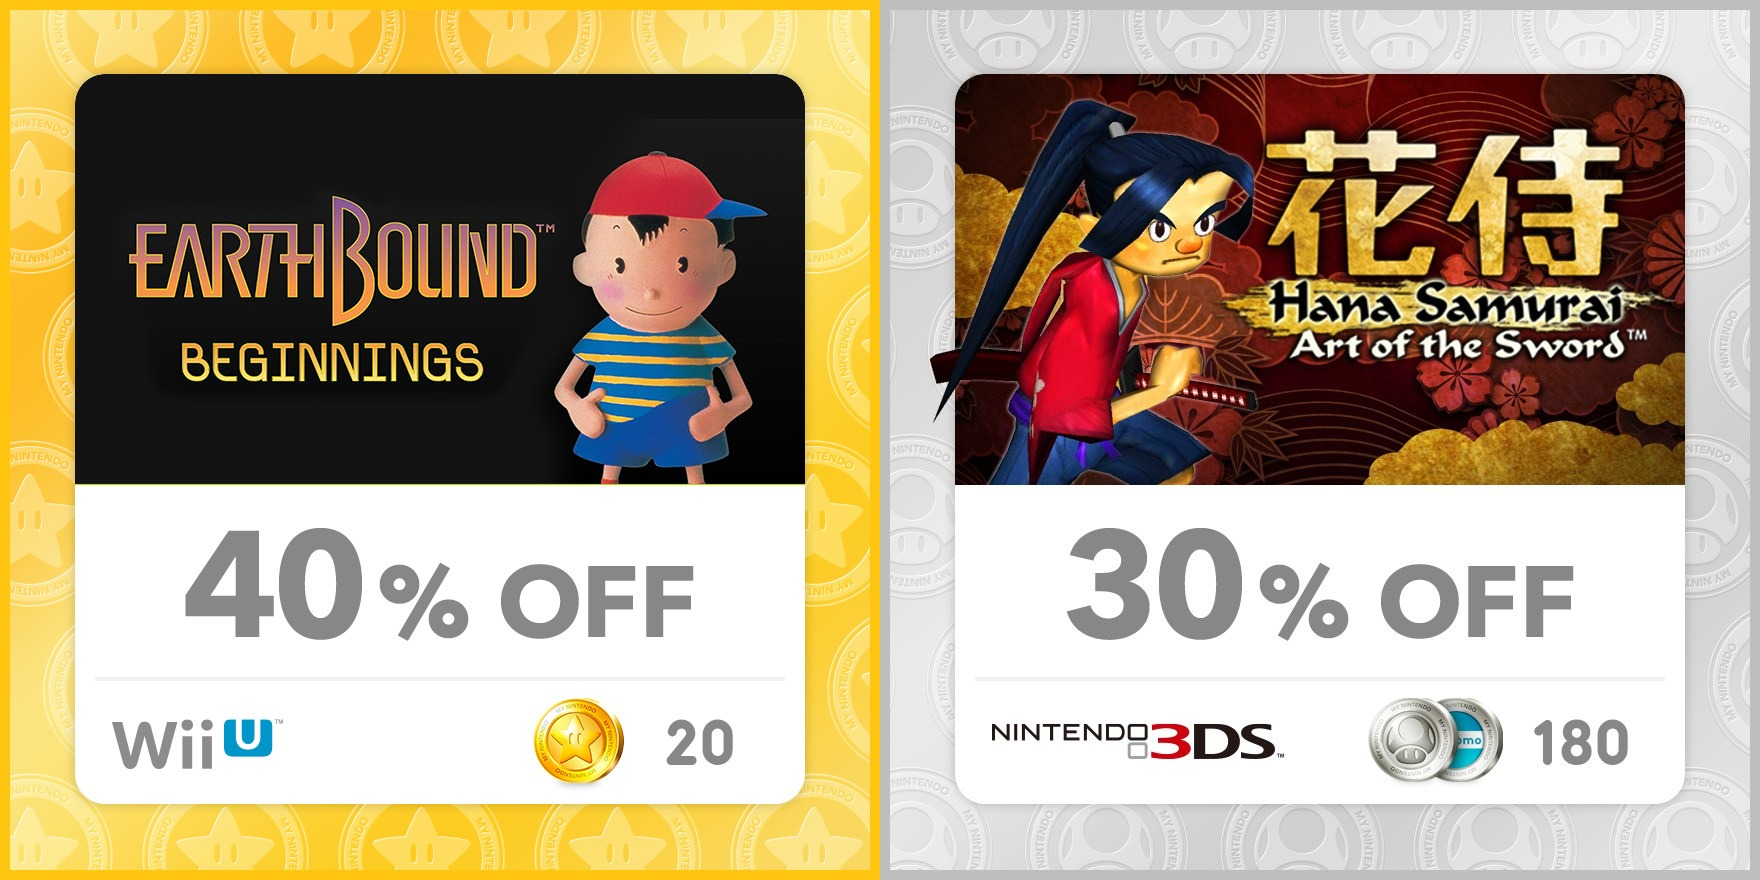 My Nintendo Europe adds discounts for EarthBound Beginnings, Hana